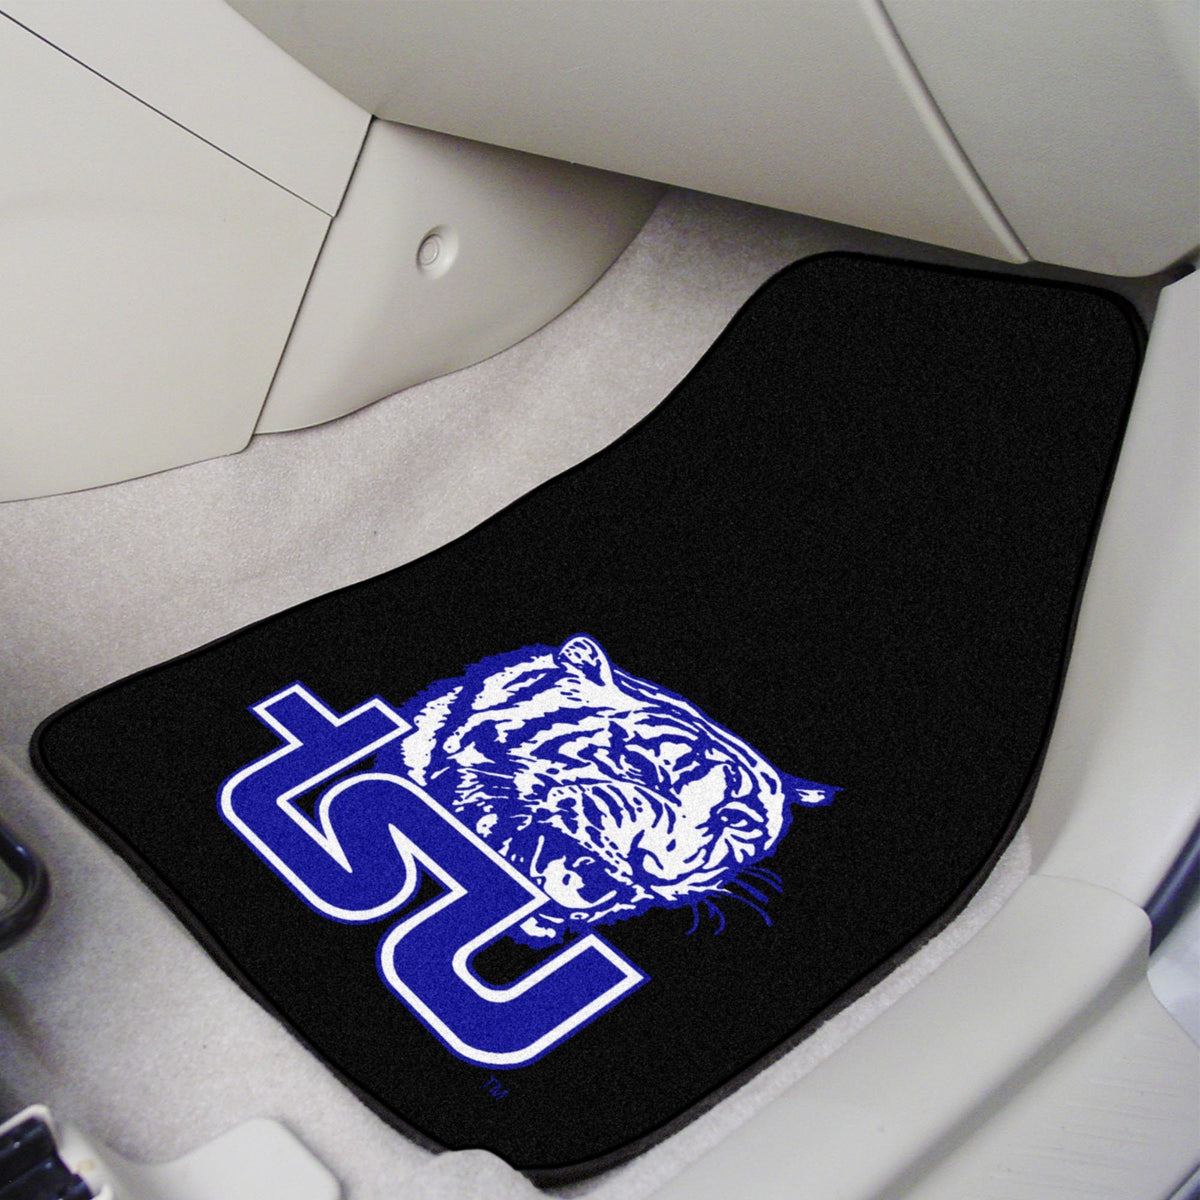 Collegiate - Carpet Car Mat, 2-Piece Set: T - Z Collegiate Car Mat, Front Car Mats, 2-pc Carpet Car Mat Set, Collegiate, Auto Fan Mats Tennessee State